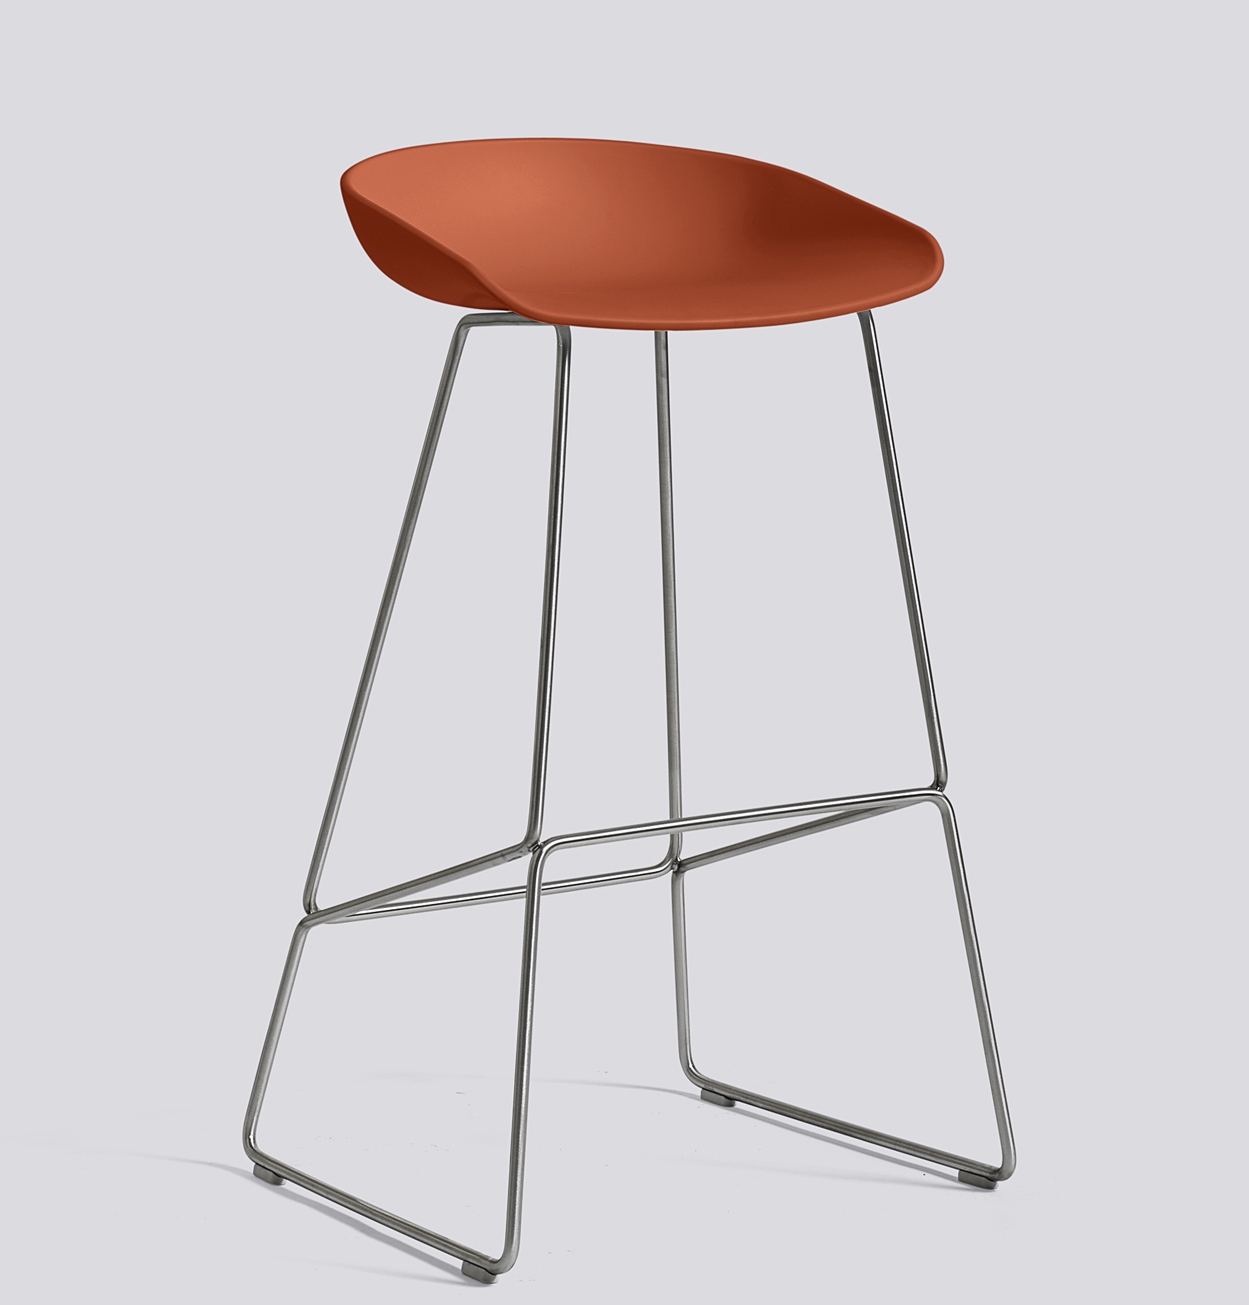 HAY About a Stool 38 Edelstahl orange